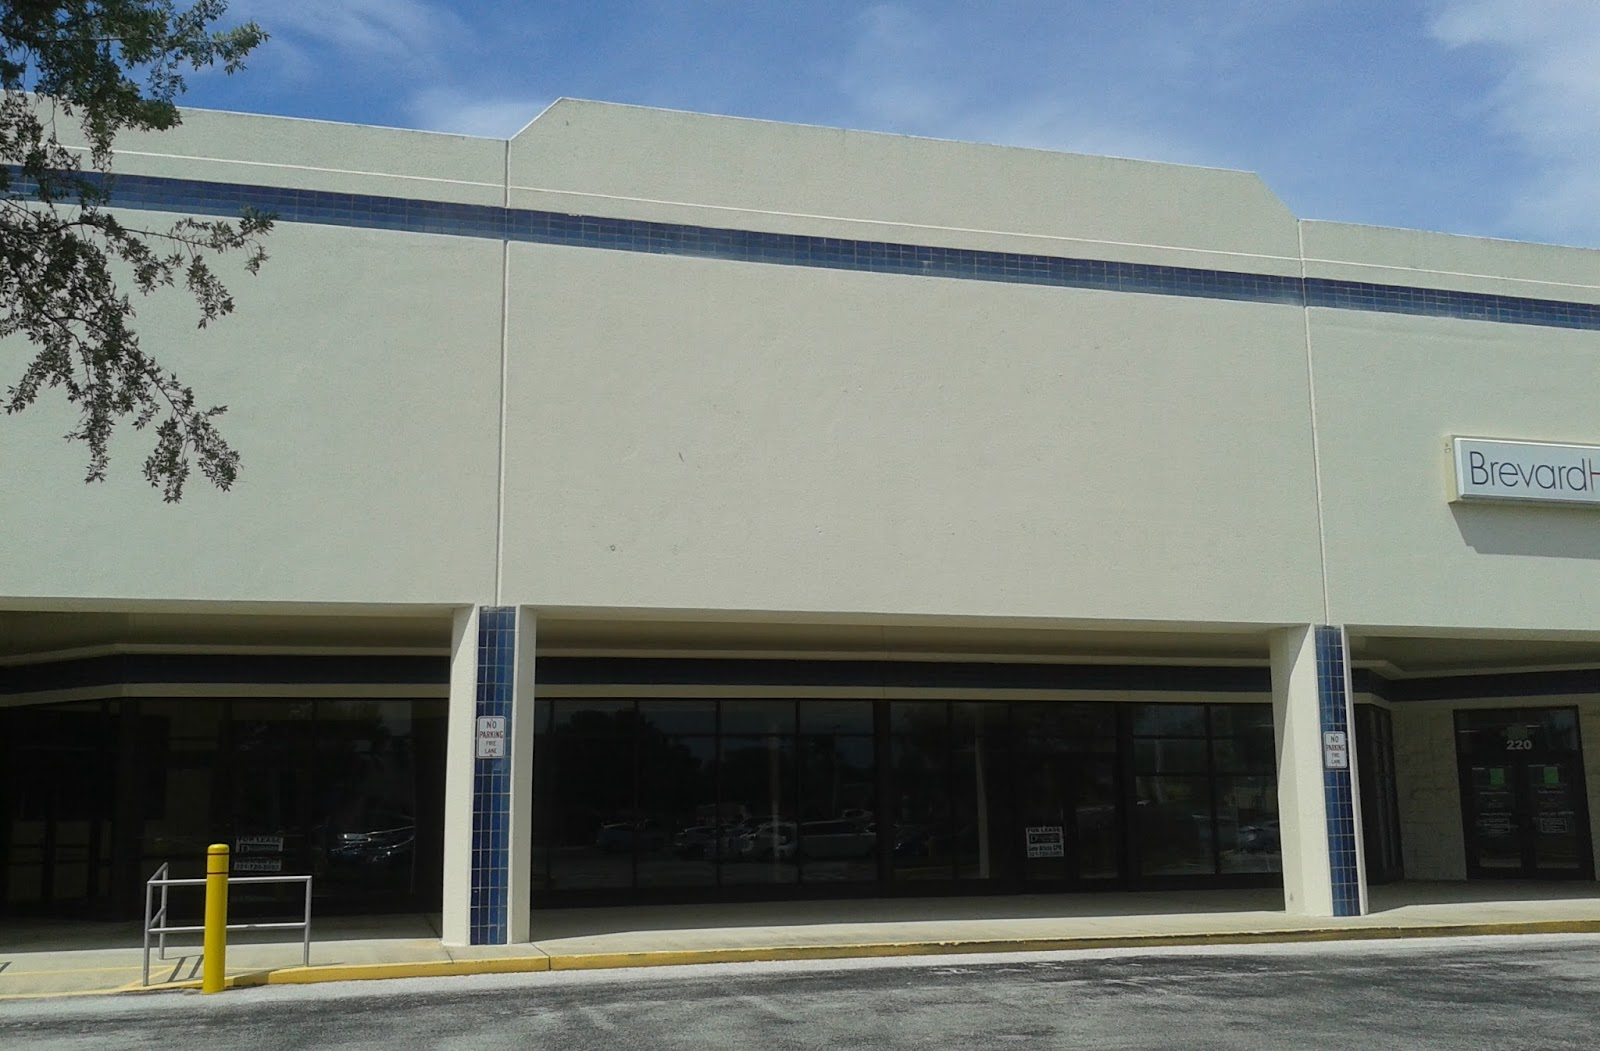 albertsons florida blog a tale of two krogers part 2